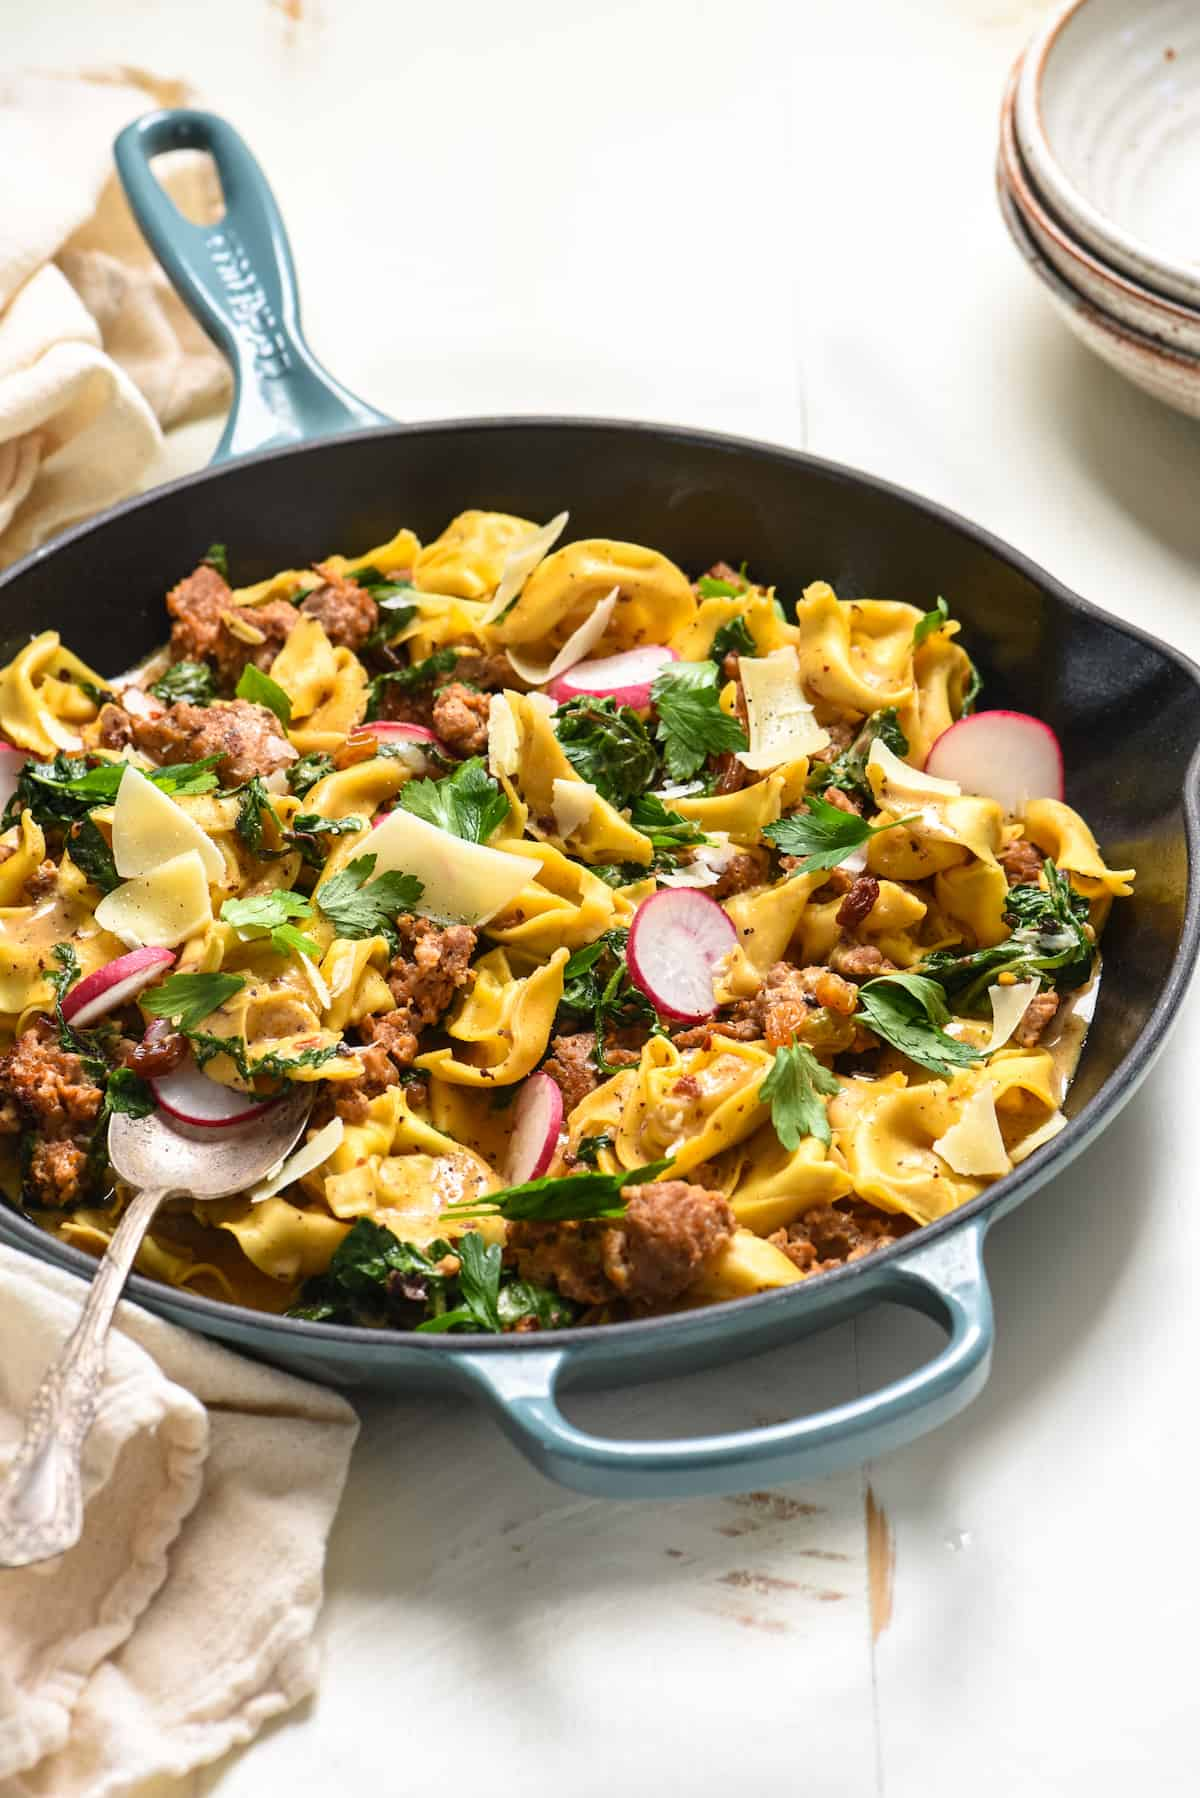 ThisOne Pan Sausage & Tortellini can be on the table in minimal time with minimal dishes. It's a perfect balance of creamy, spicy and sweet, and there's tons of hidden veggies, too! | foxeslovelemons.com